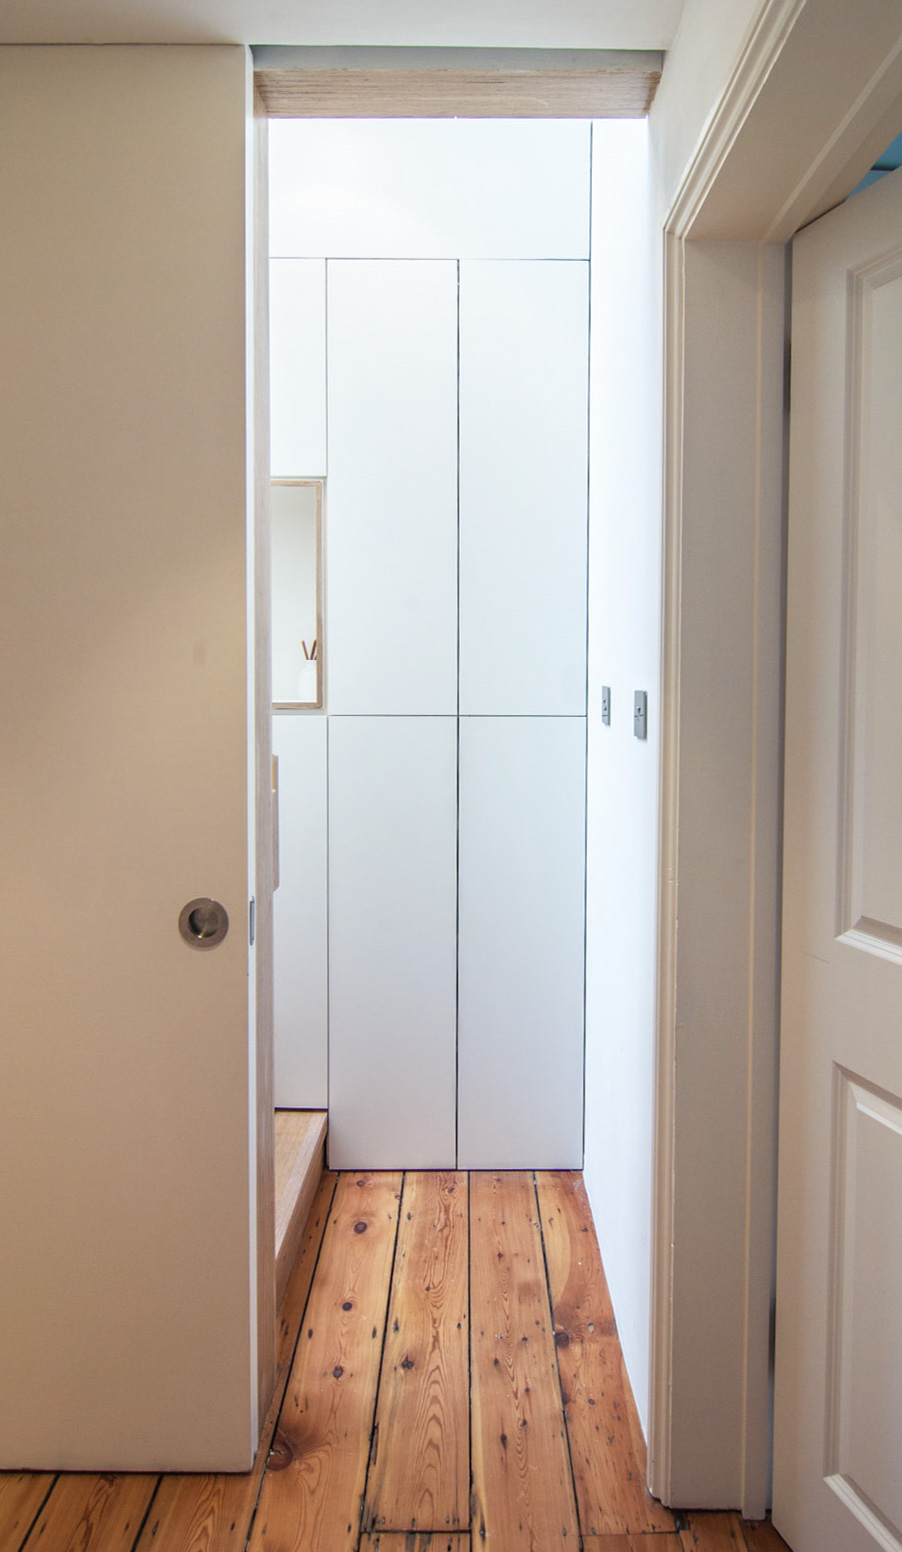 Rustic pine flooring contrasting with the white contemporary concealed door.